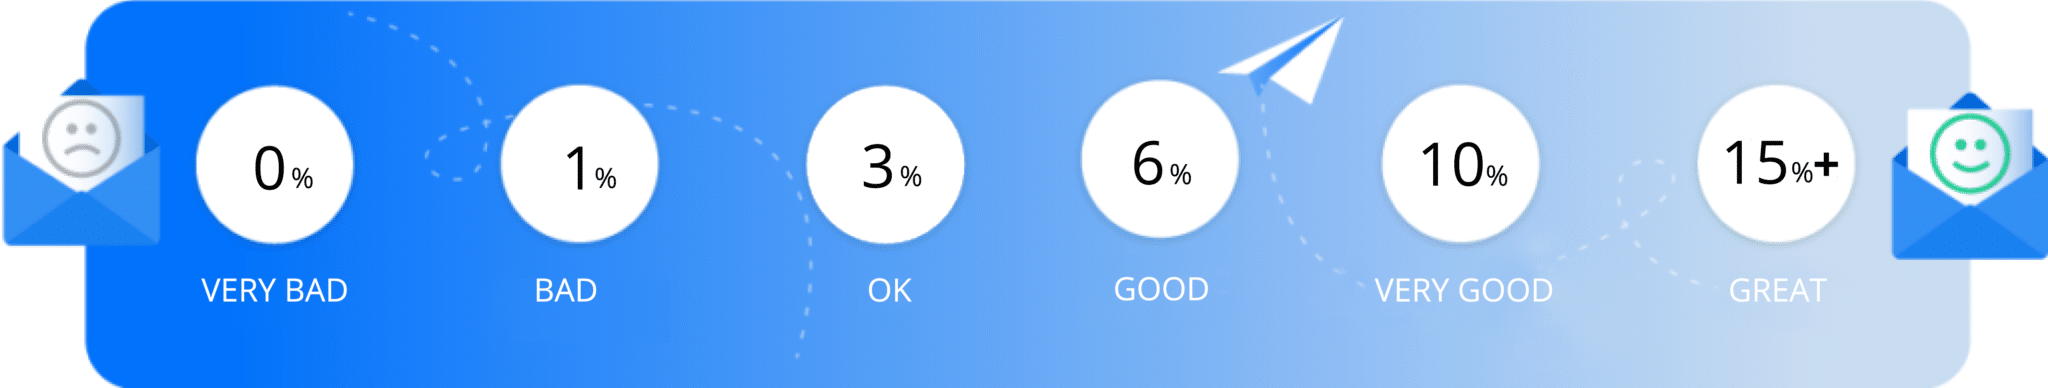 Cold email campaign—measuring effectiveness using the number of positive responses